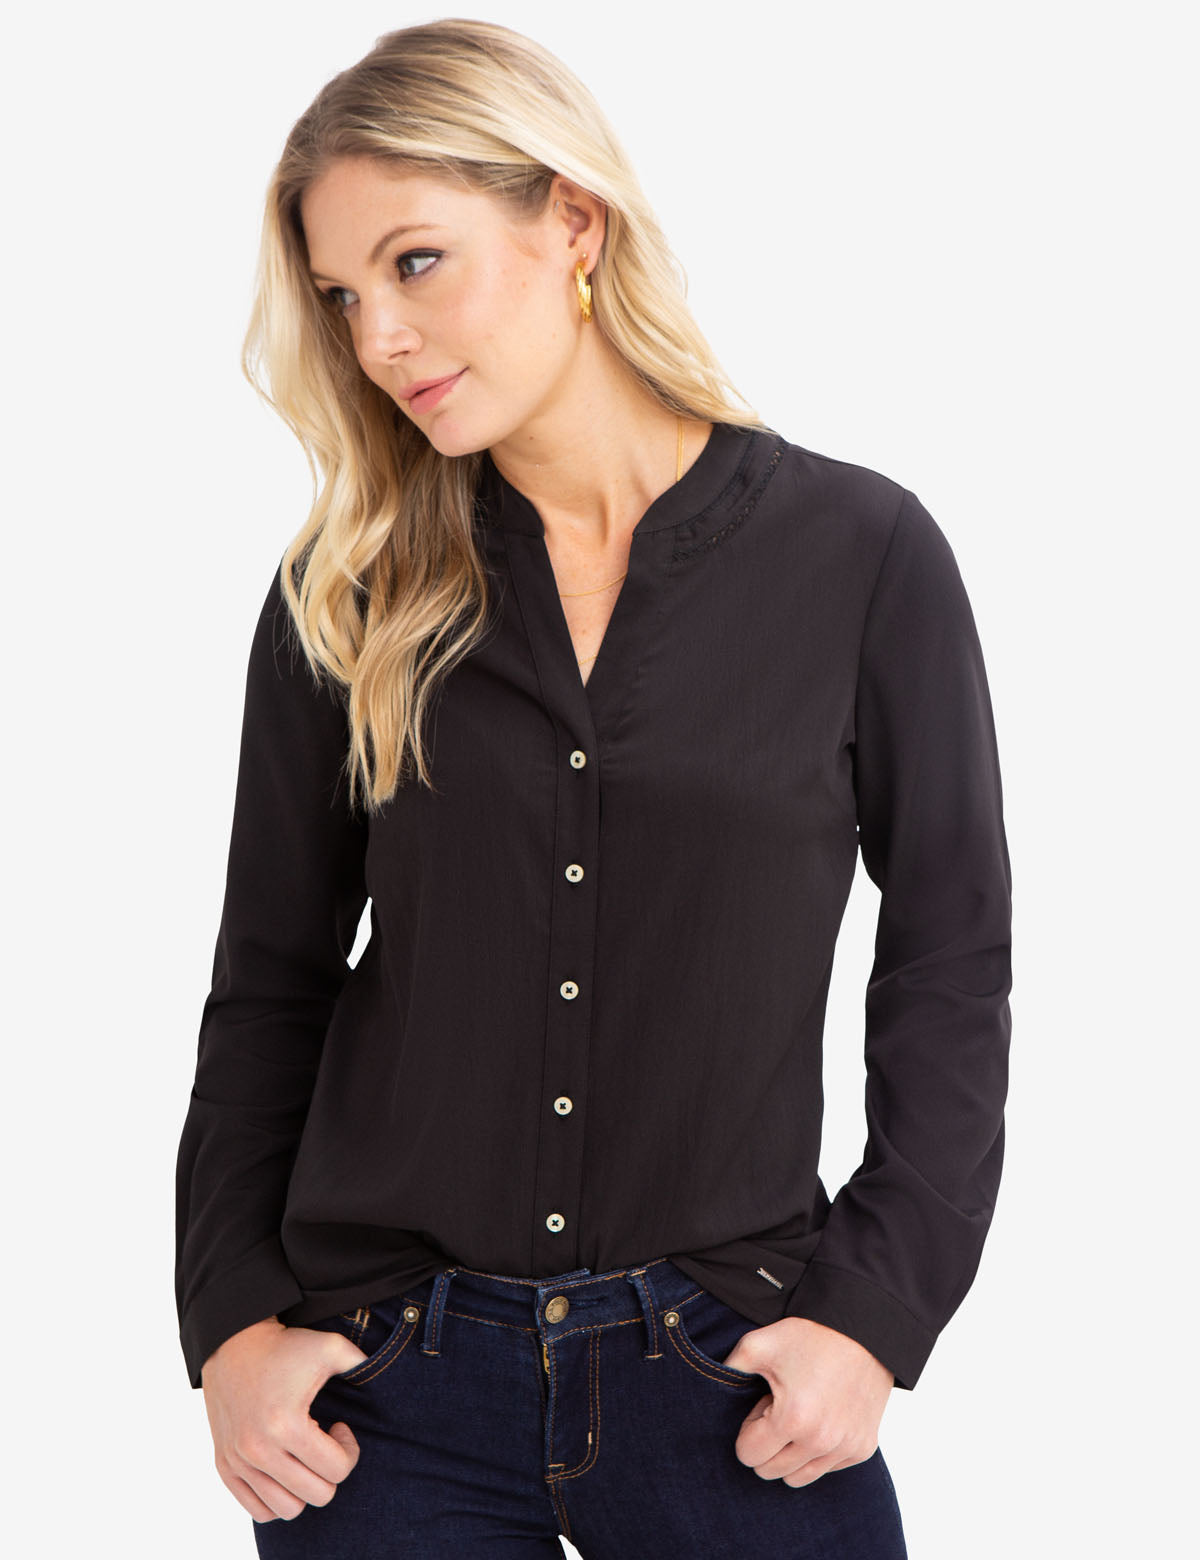 TRIM CREPE SHIRT - U.S. Polo Assn.